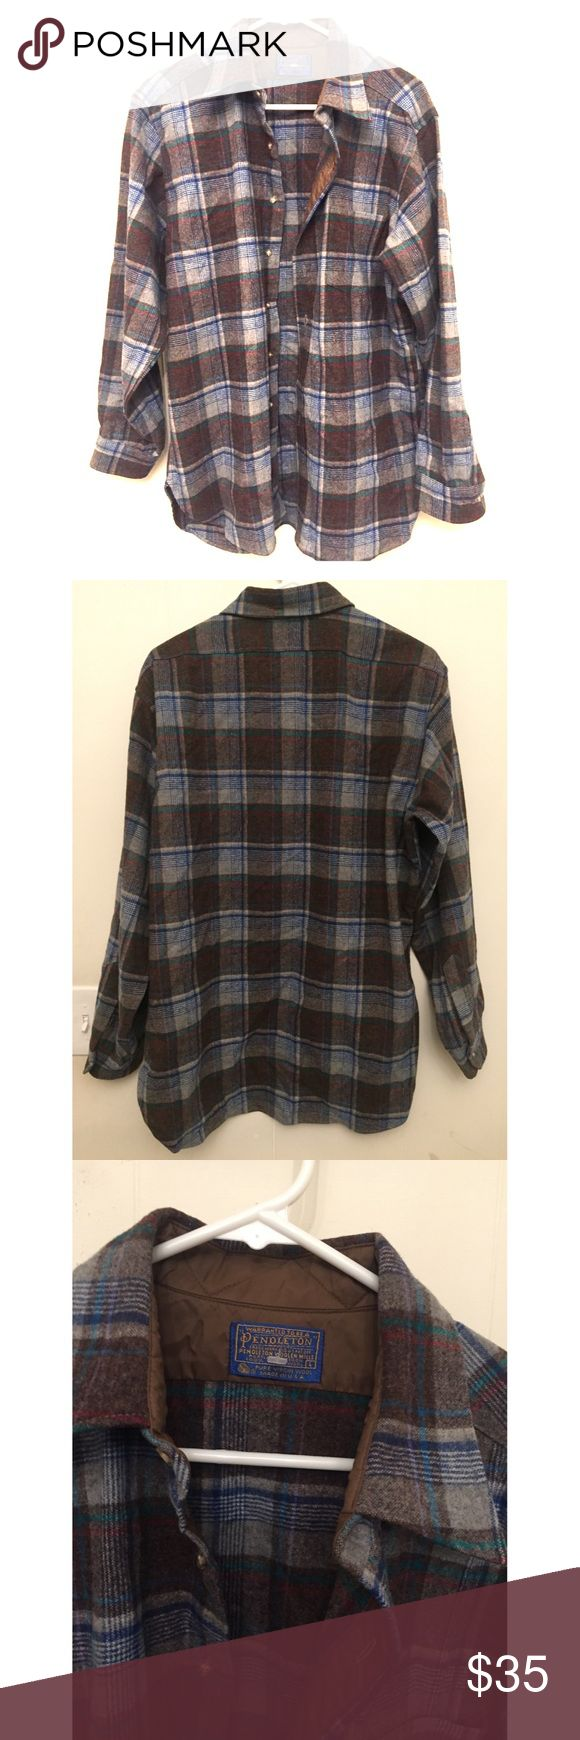 Pendleton Button Up Shirt %100 Wool Brand New Pendleton Shirt, %100 Wool Shirt, Never Worn, Shirts seems Ready for any chilly weather and Stylish with any Outfit, you don't know about this brand please look it up!!!! Great Deal here.... $79.99 Retail Value!!!! Pendleton Shirts Casual Button Down Shirts